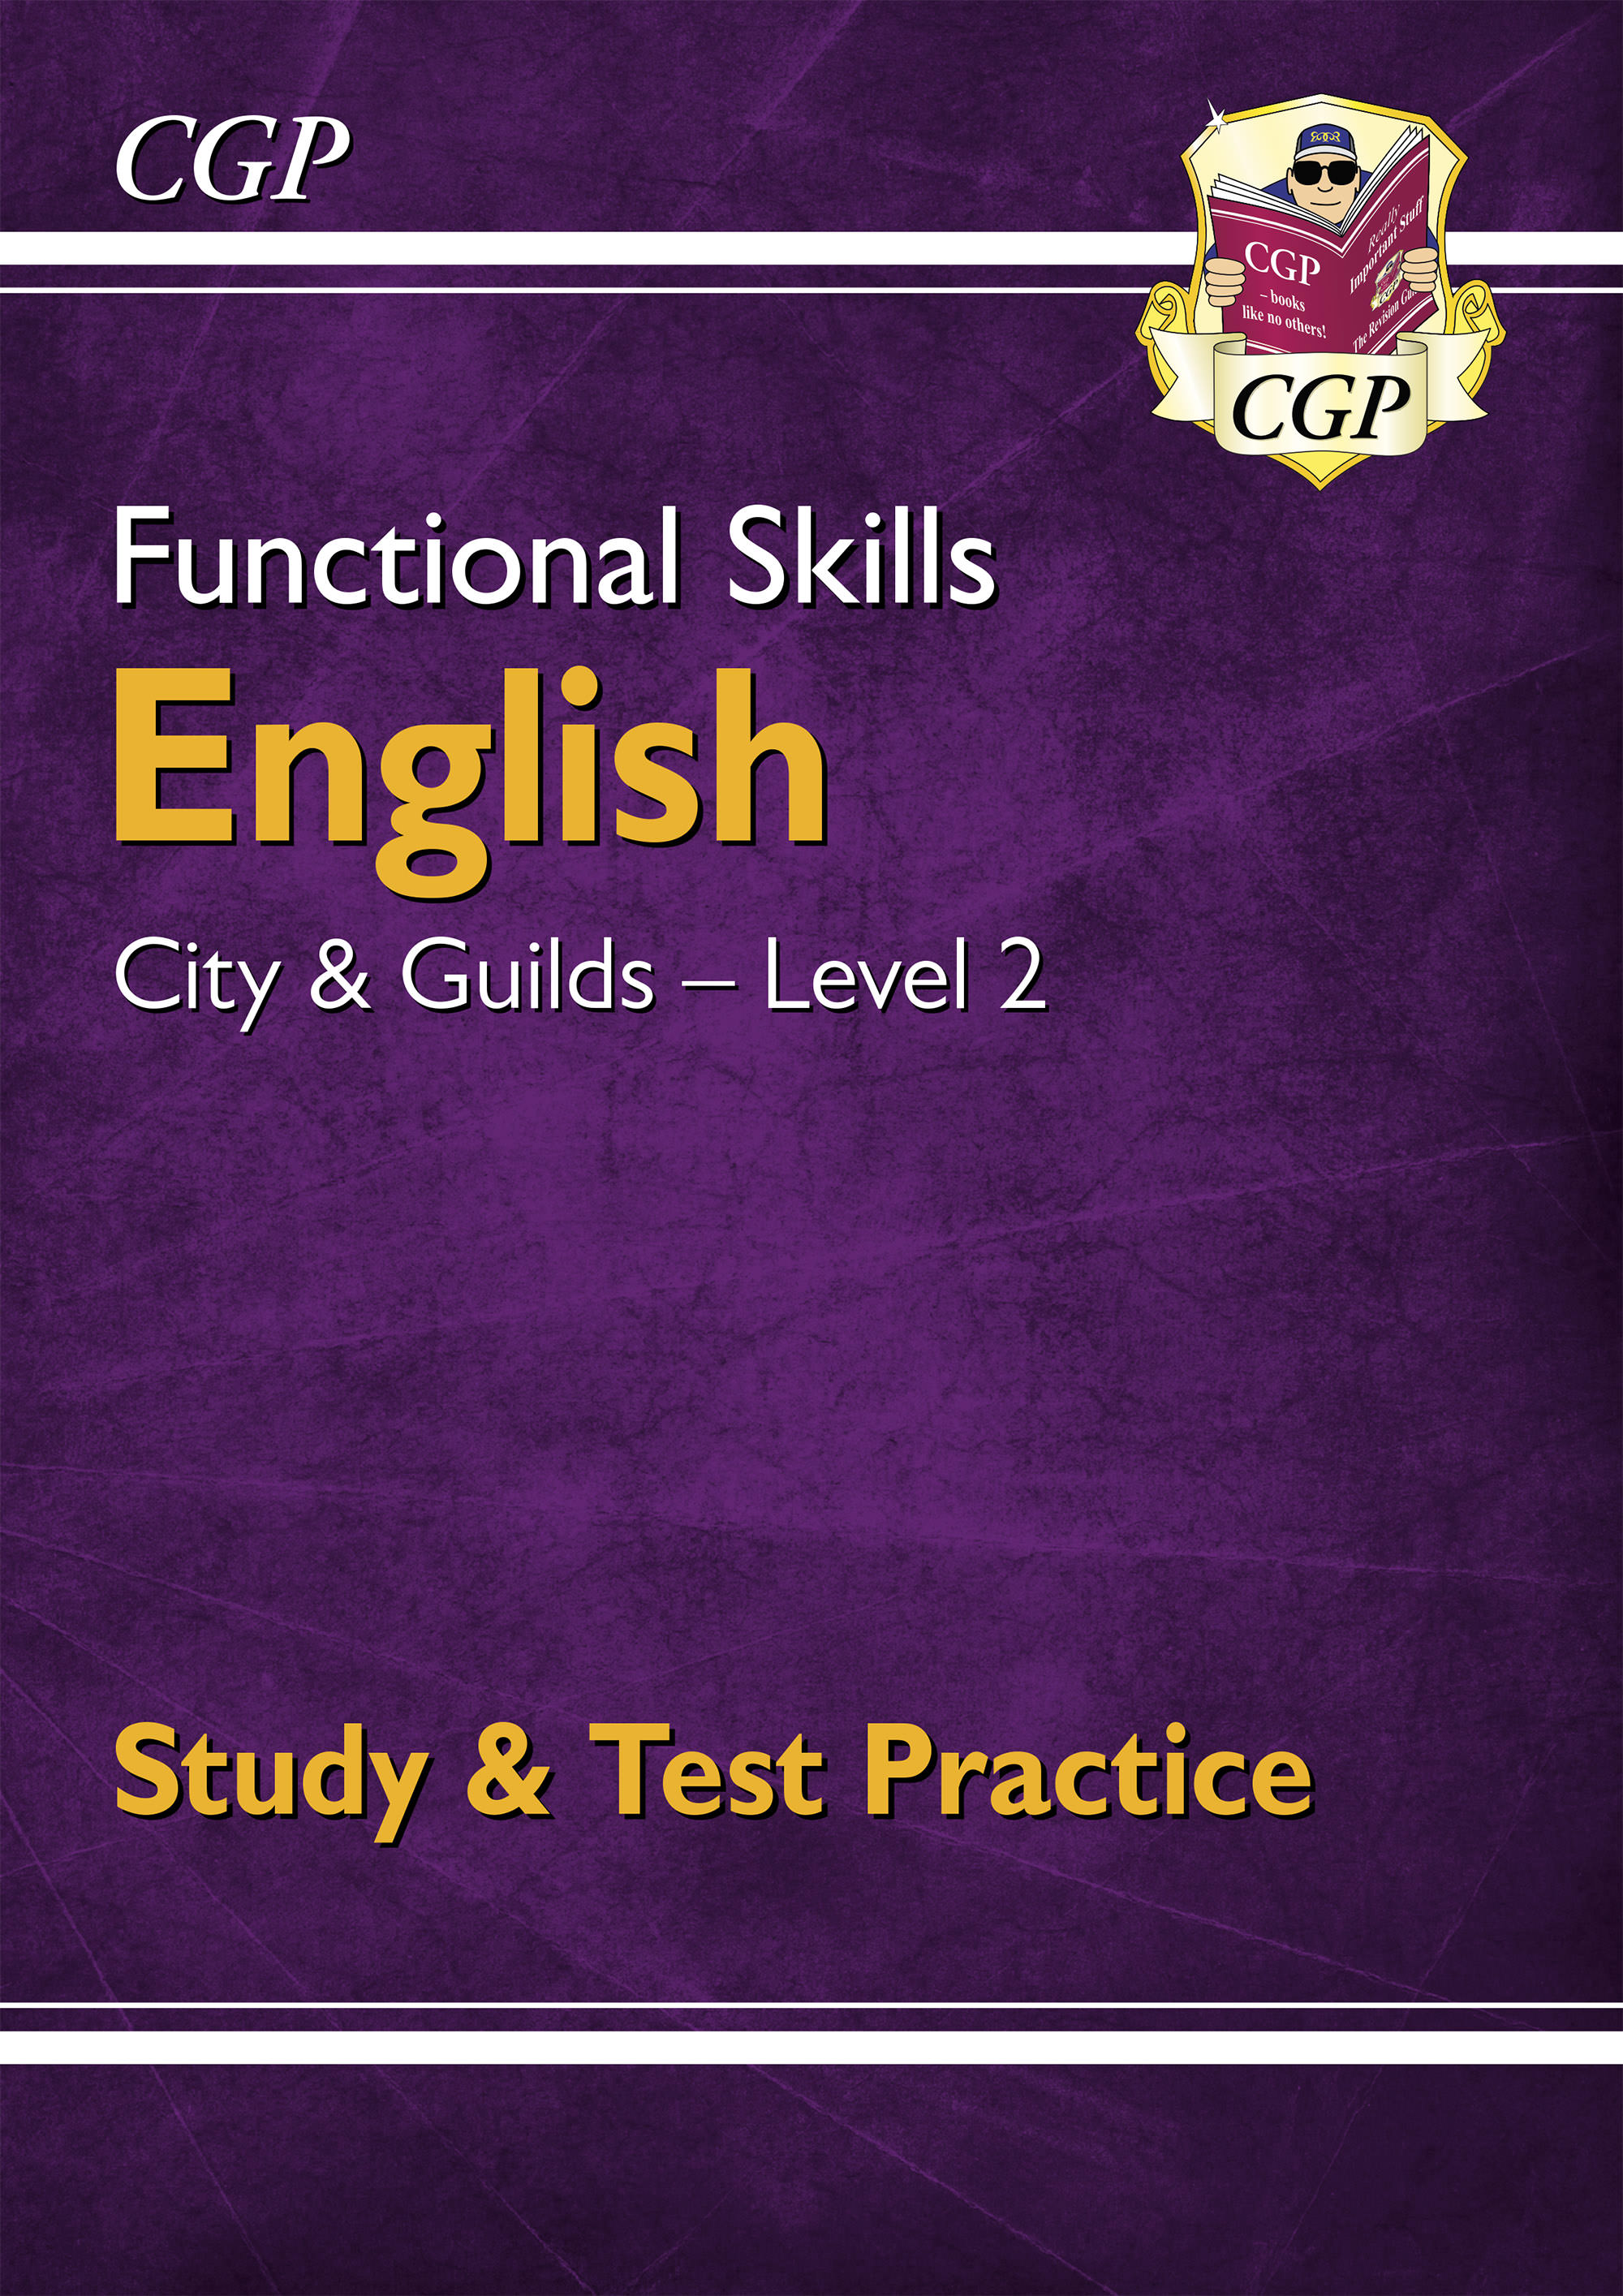 E2CGSRA1DK - New Functional Skills English: City & Guilds Level 2 - Study & Test Practice (for 2020